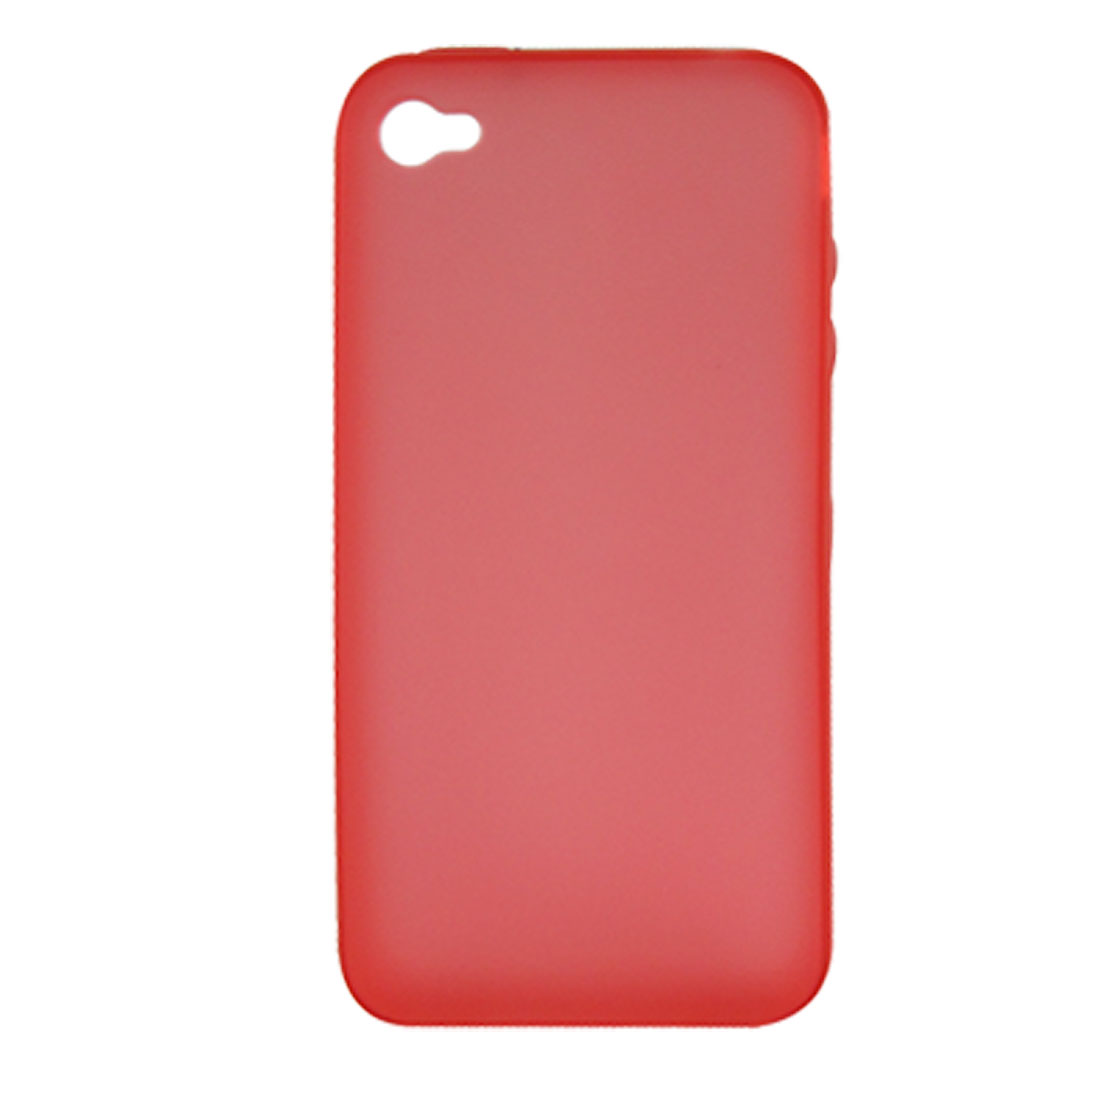 Clear Red Soft Plastic Protect Case for Apple iPhone 4 4G